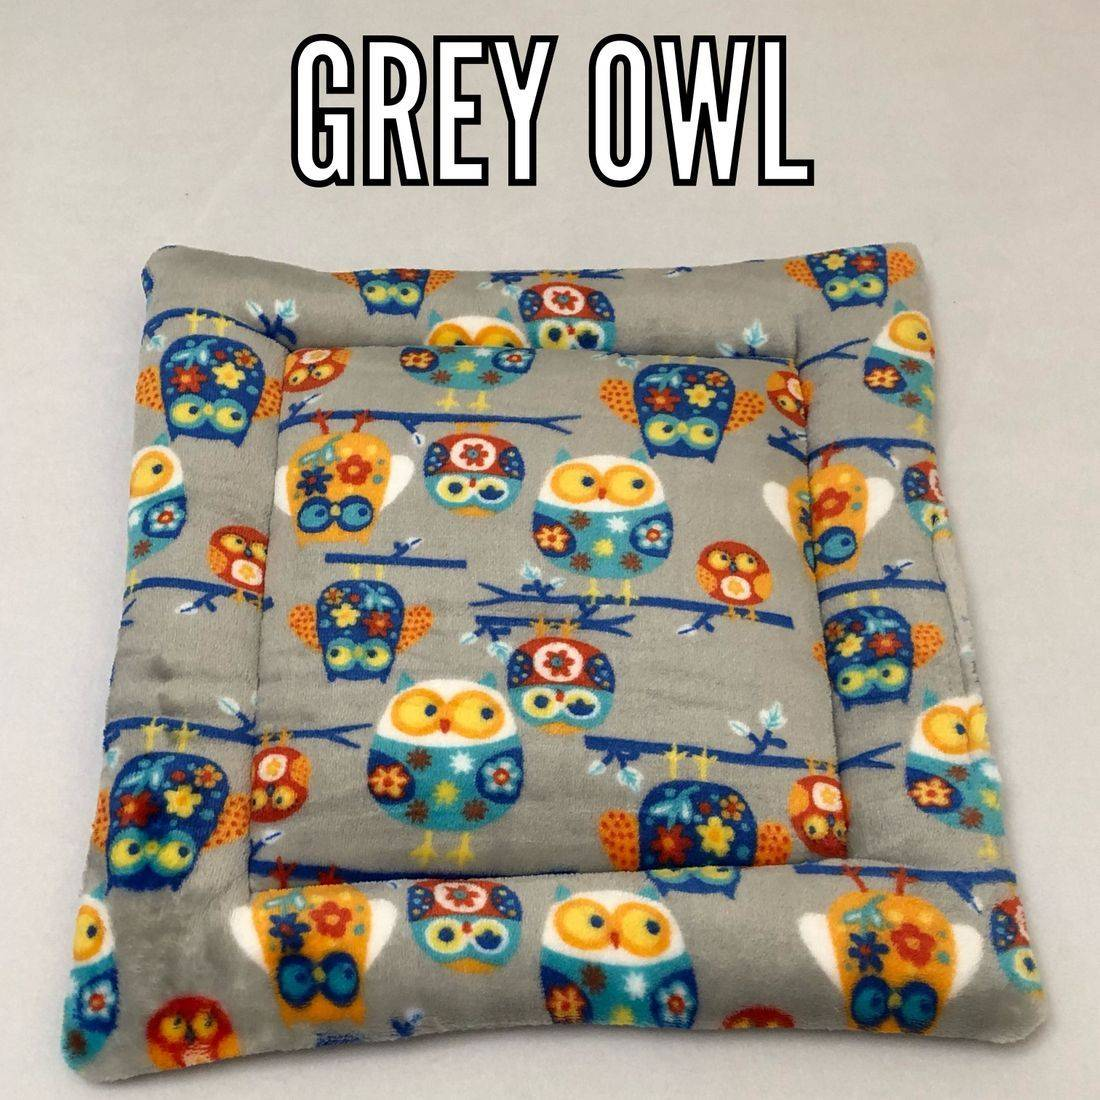 grey Owl fabric